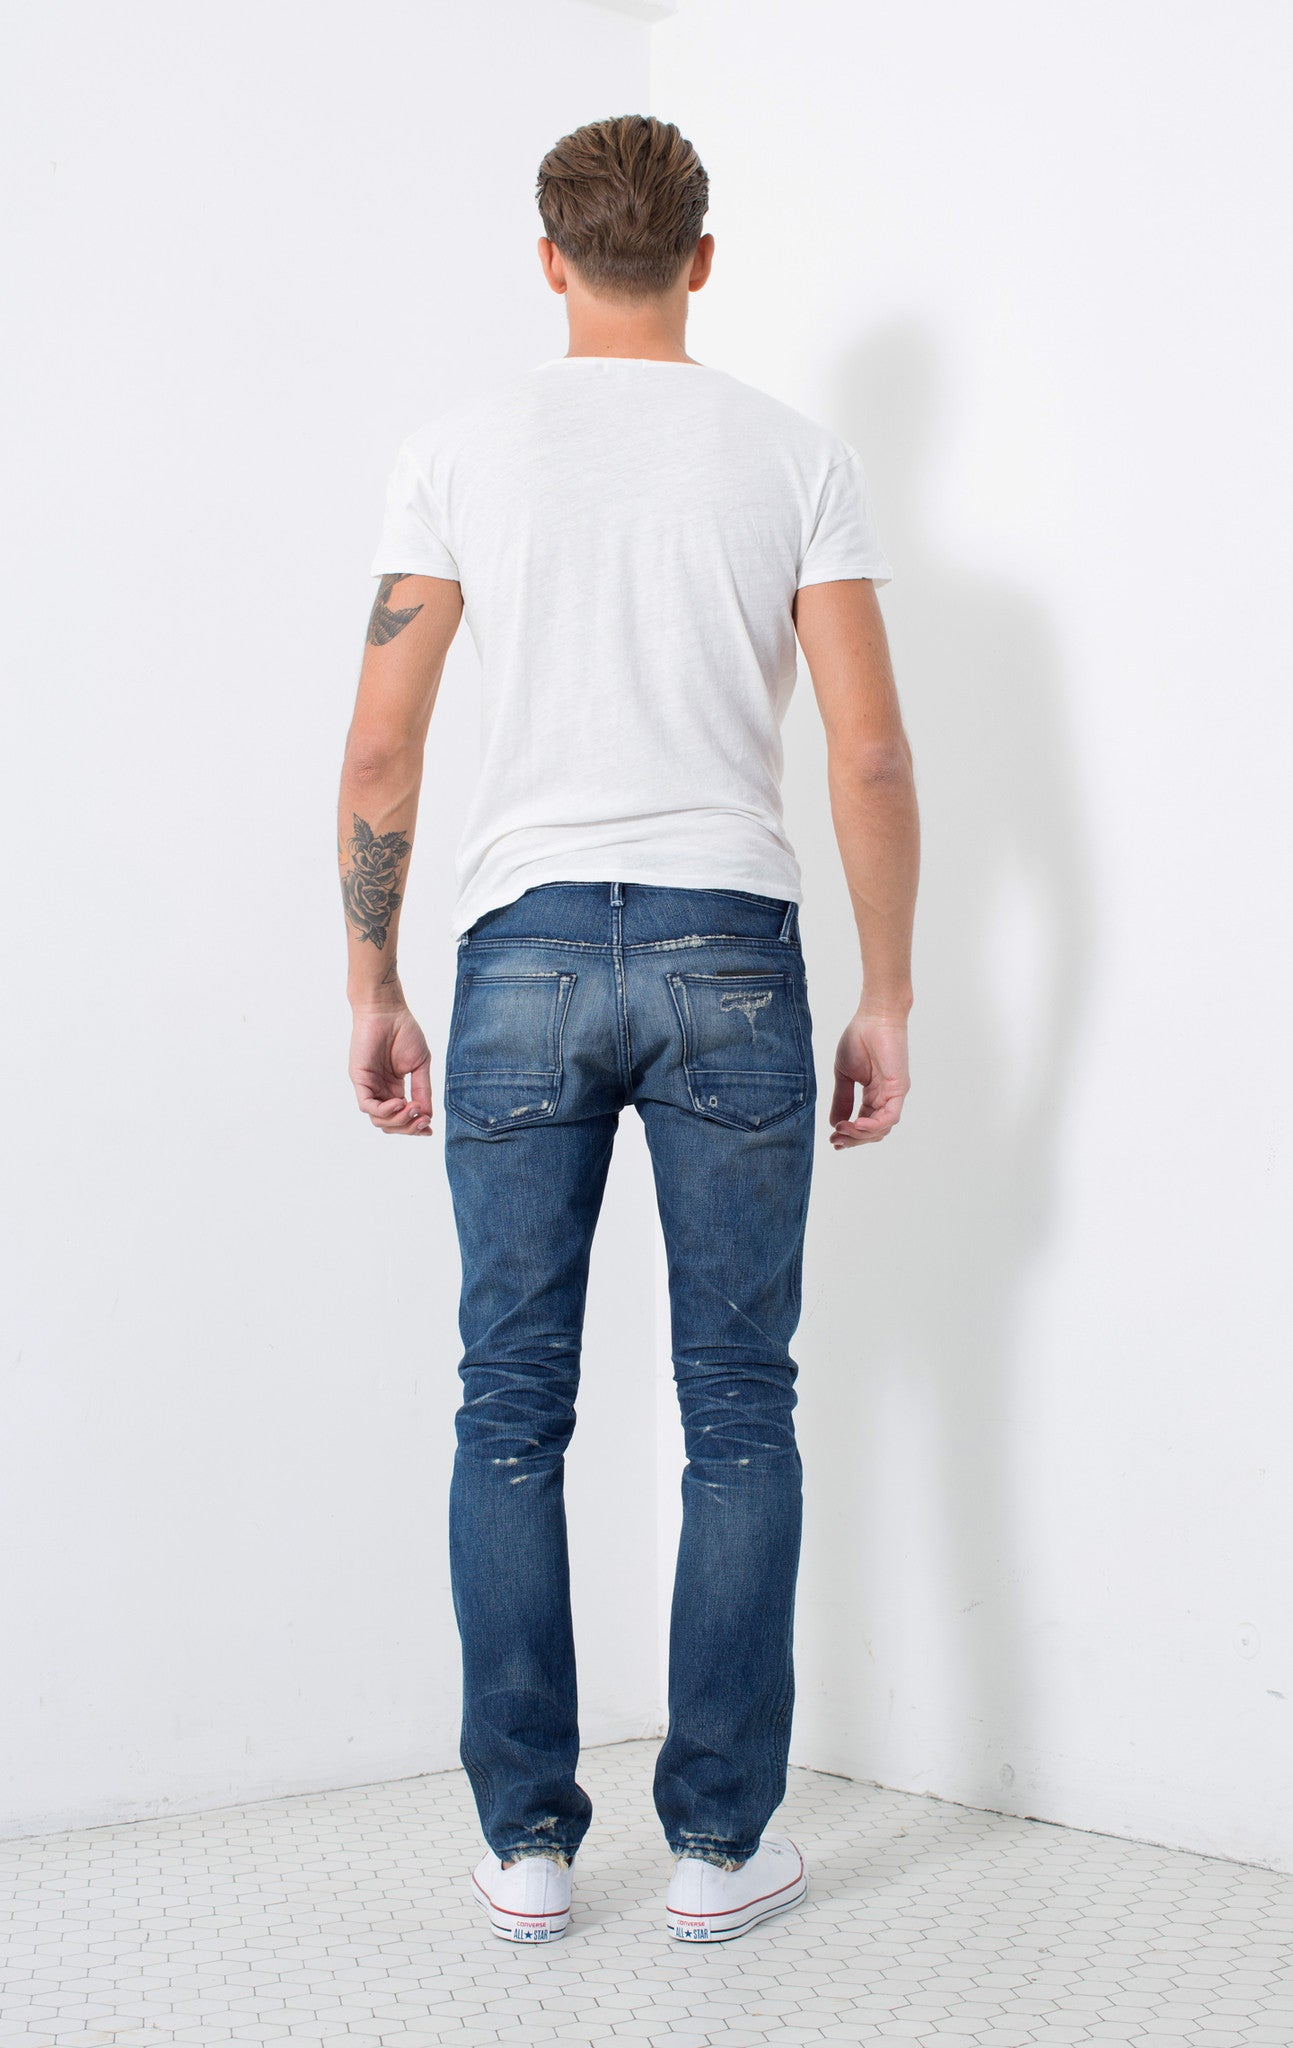 SLIM FIT in MARSHALL | MADE TO ORDER